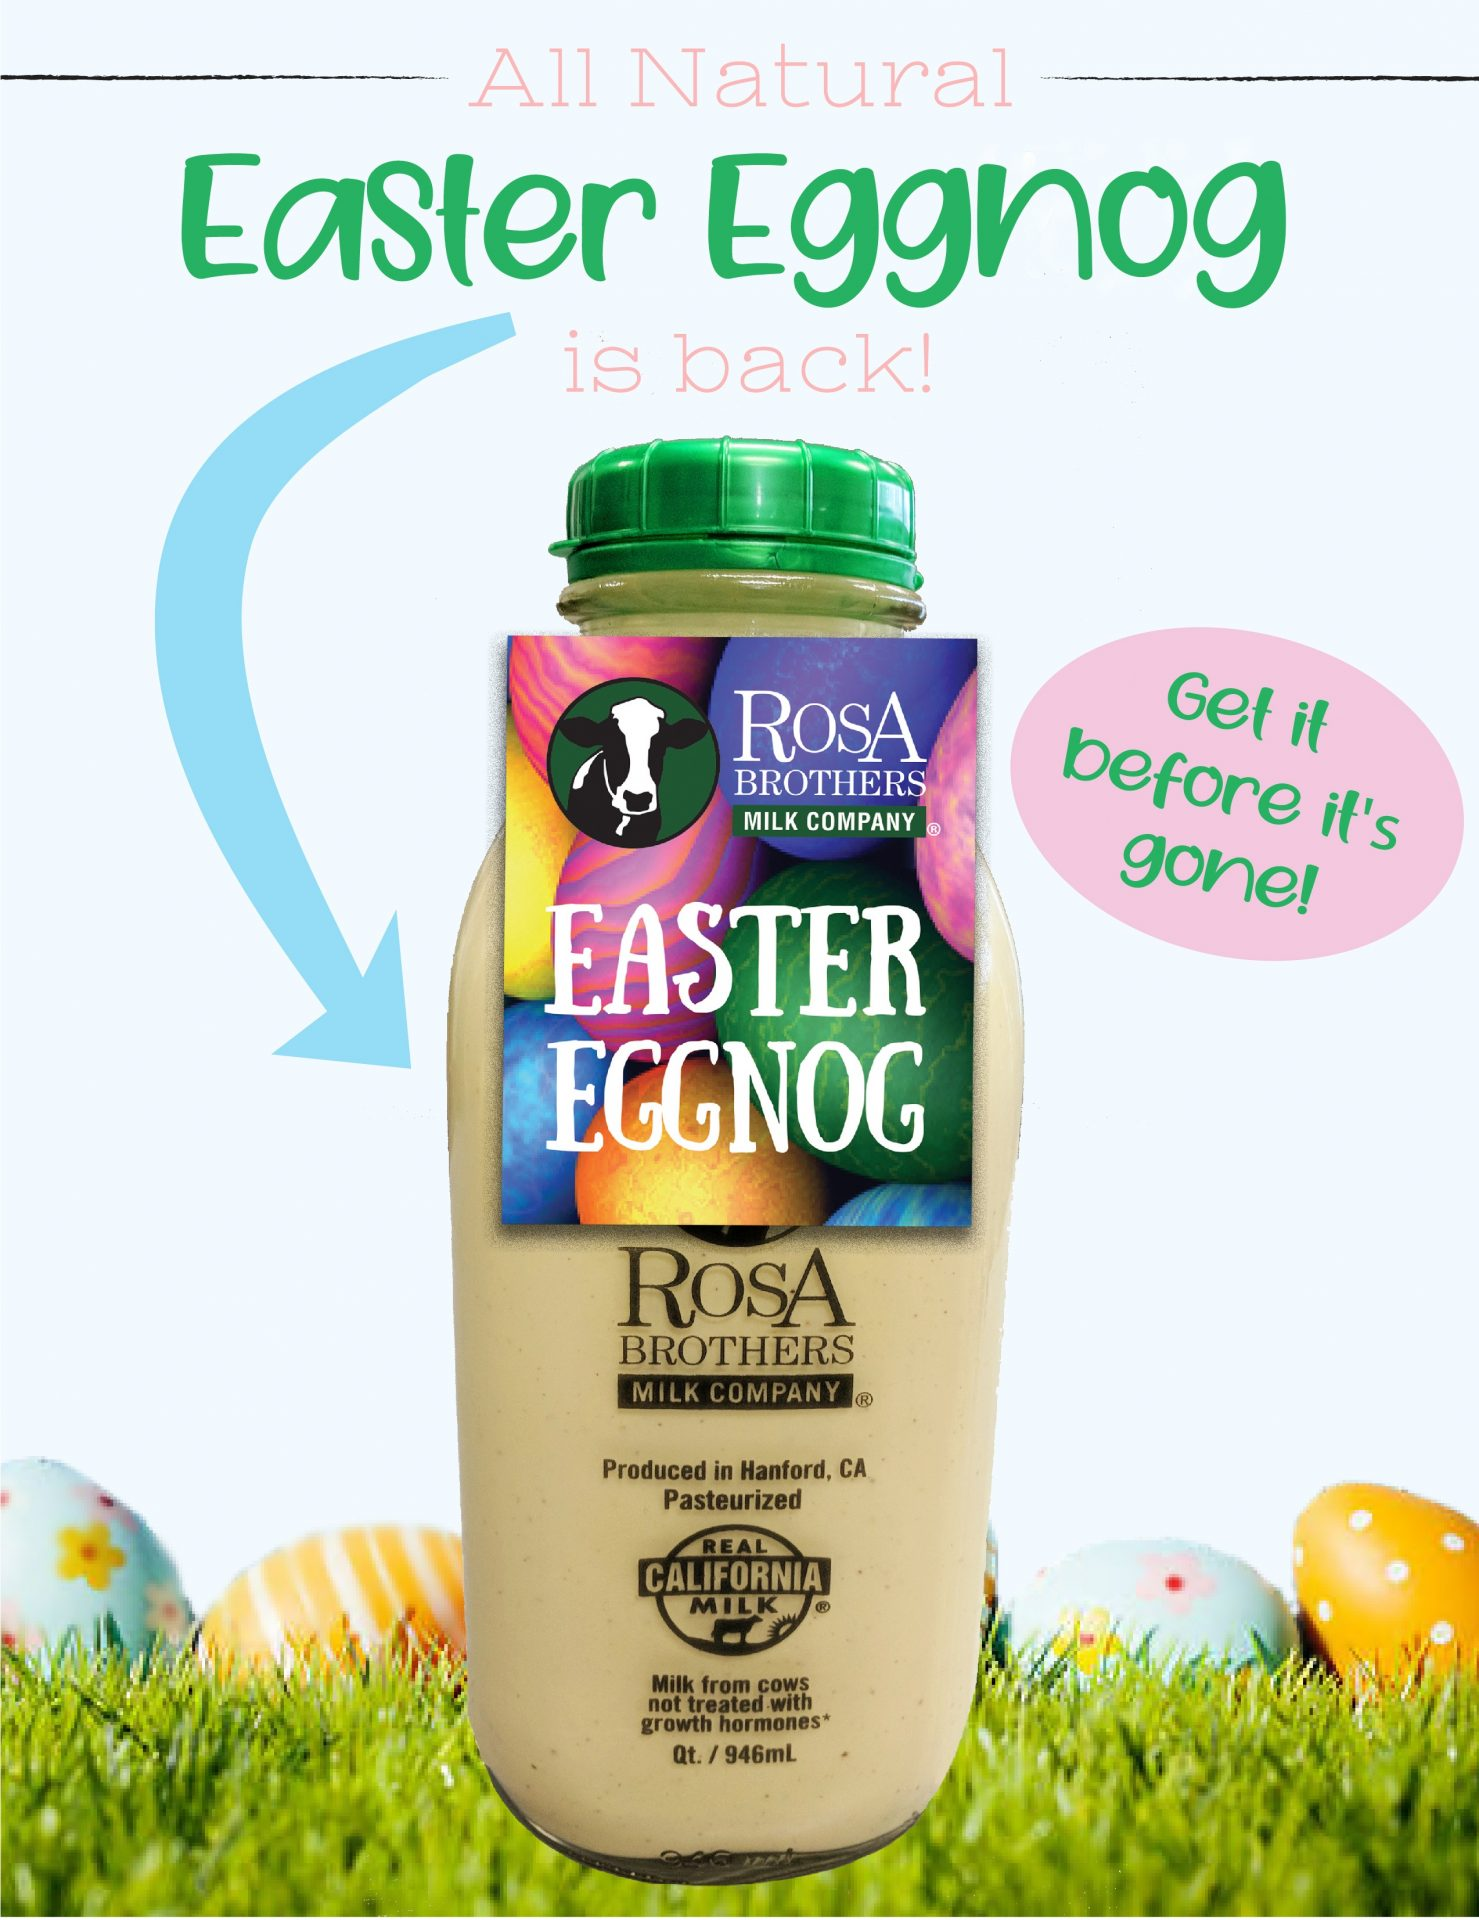 Easter Eggnog Flyer customer